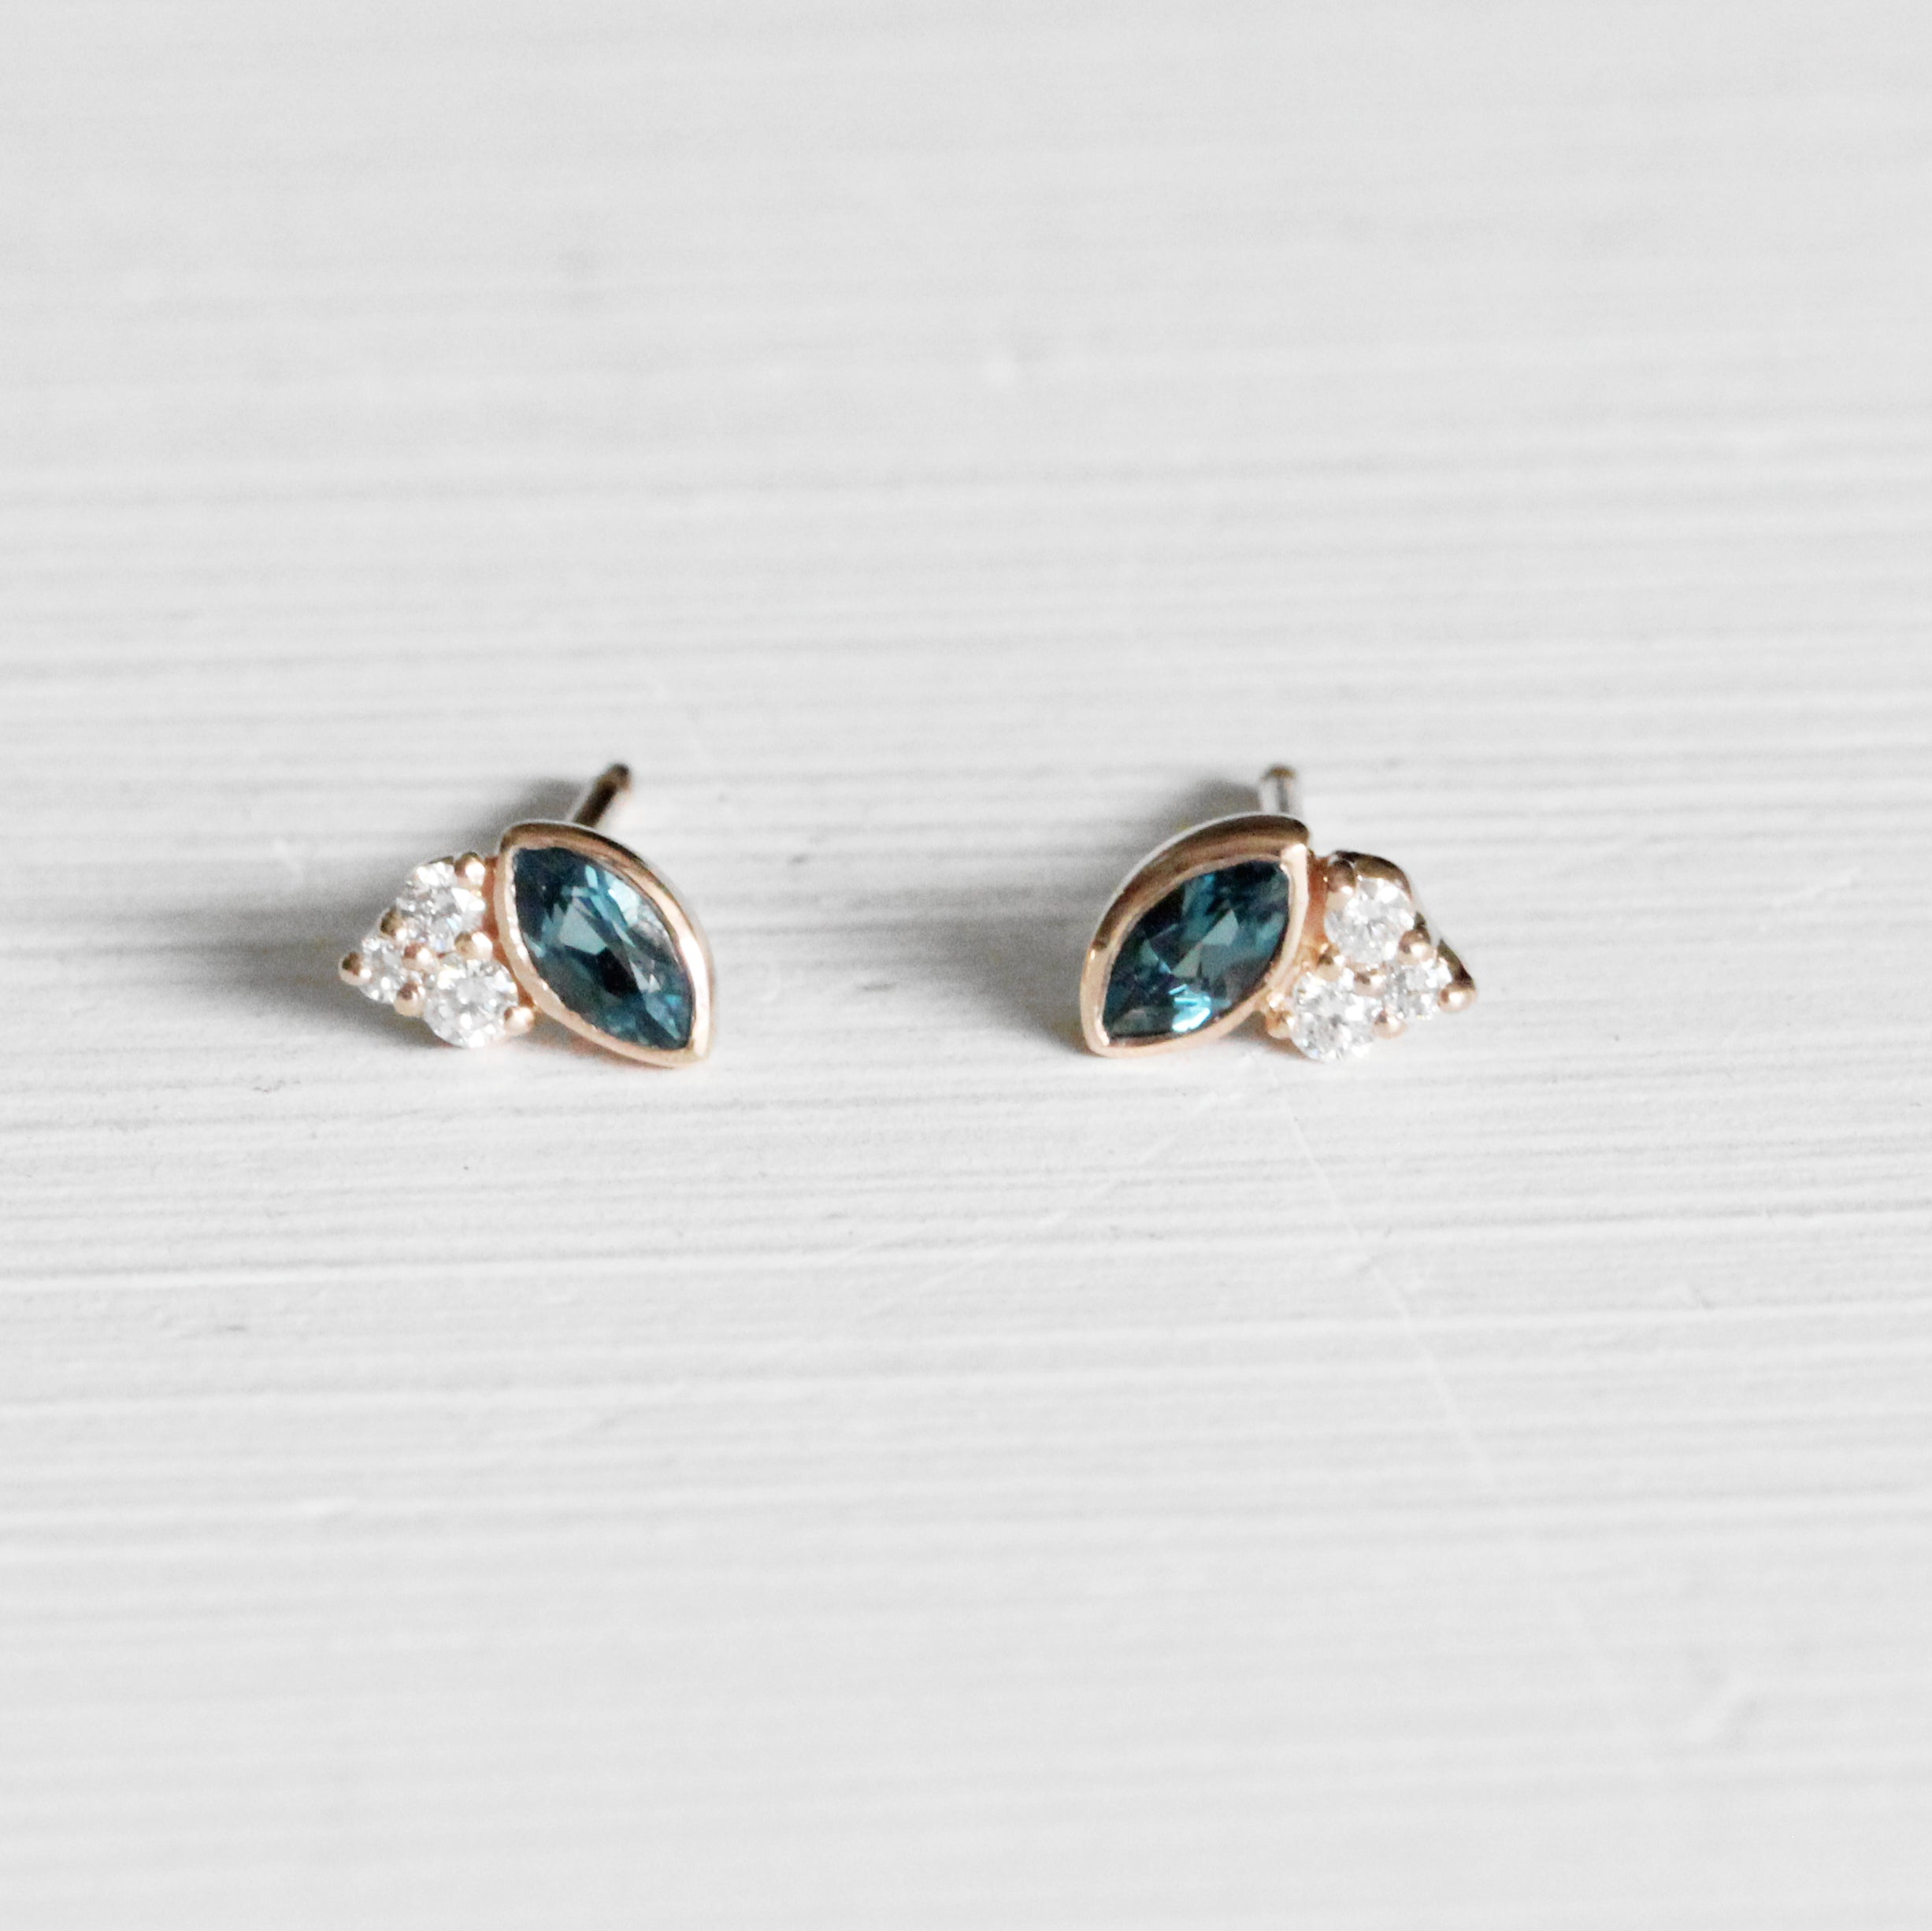 Jolean Earrings with London Blue Topaz + Diamonds - Your Choice of Gold - Celestial Diamonds ® by Midwinter Co.